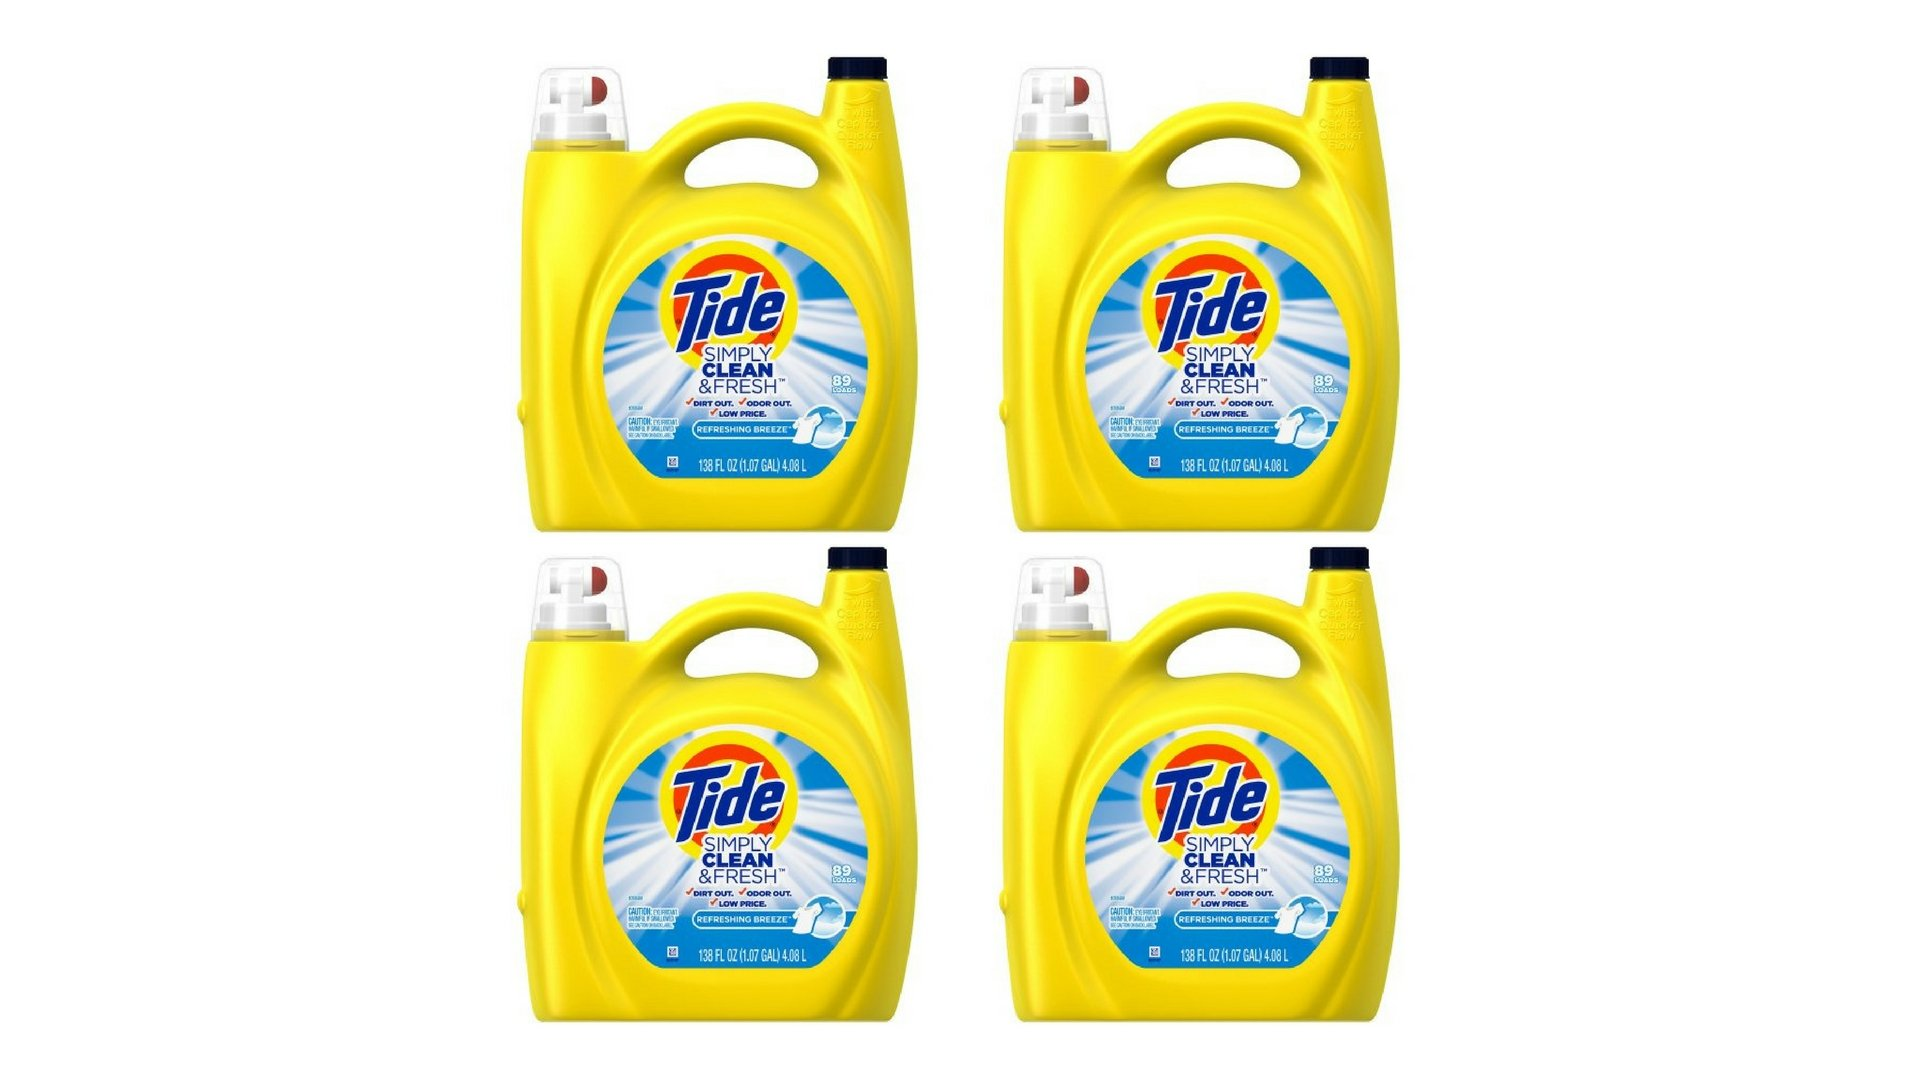 Tide Simply Clean & Fresh HE Liquid Laundry Detergent, Refreshing Breeze Scent 138 fl oz per bottle set of 4 by Tide